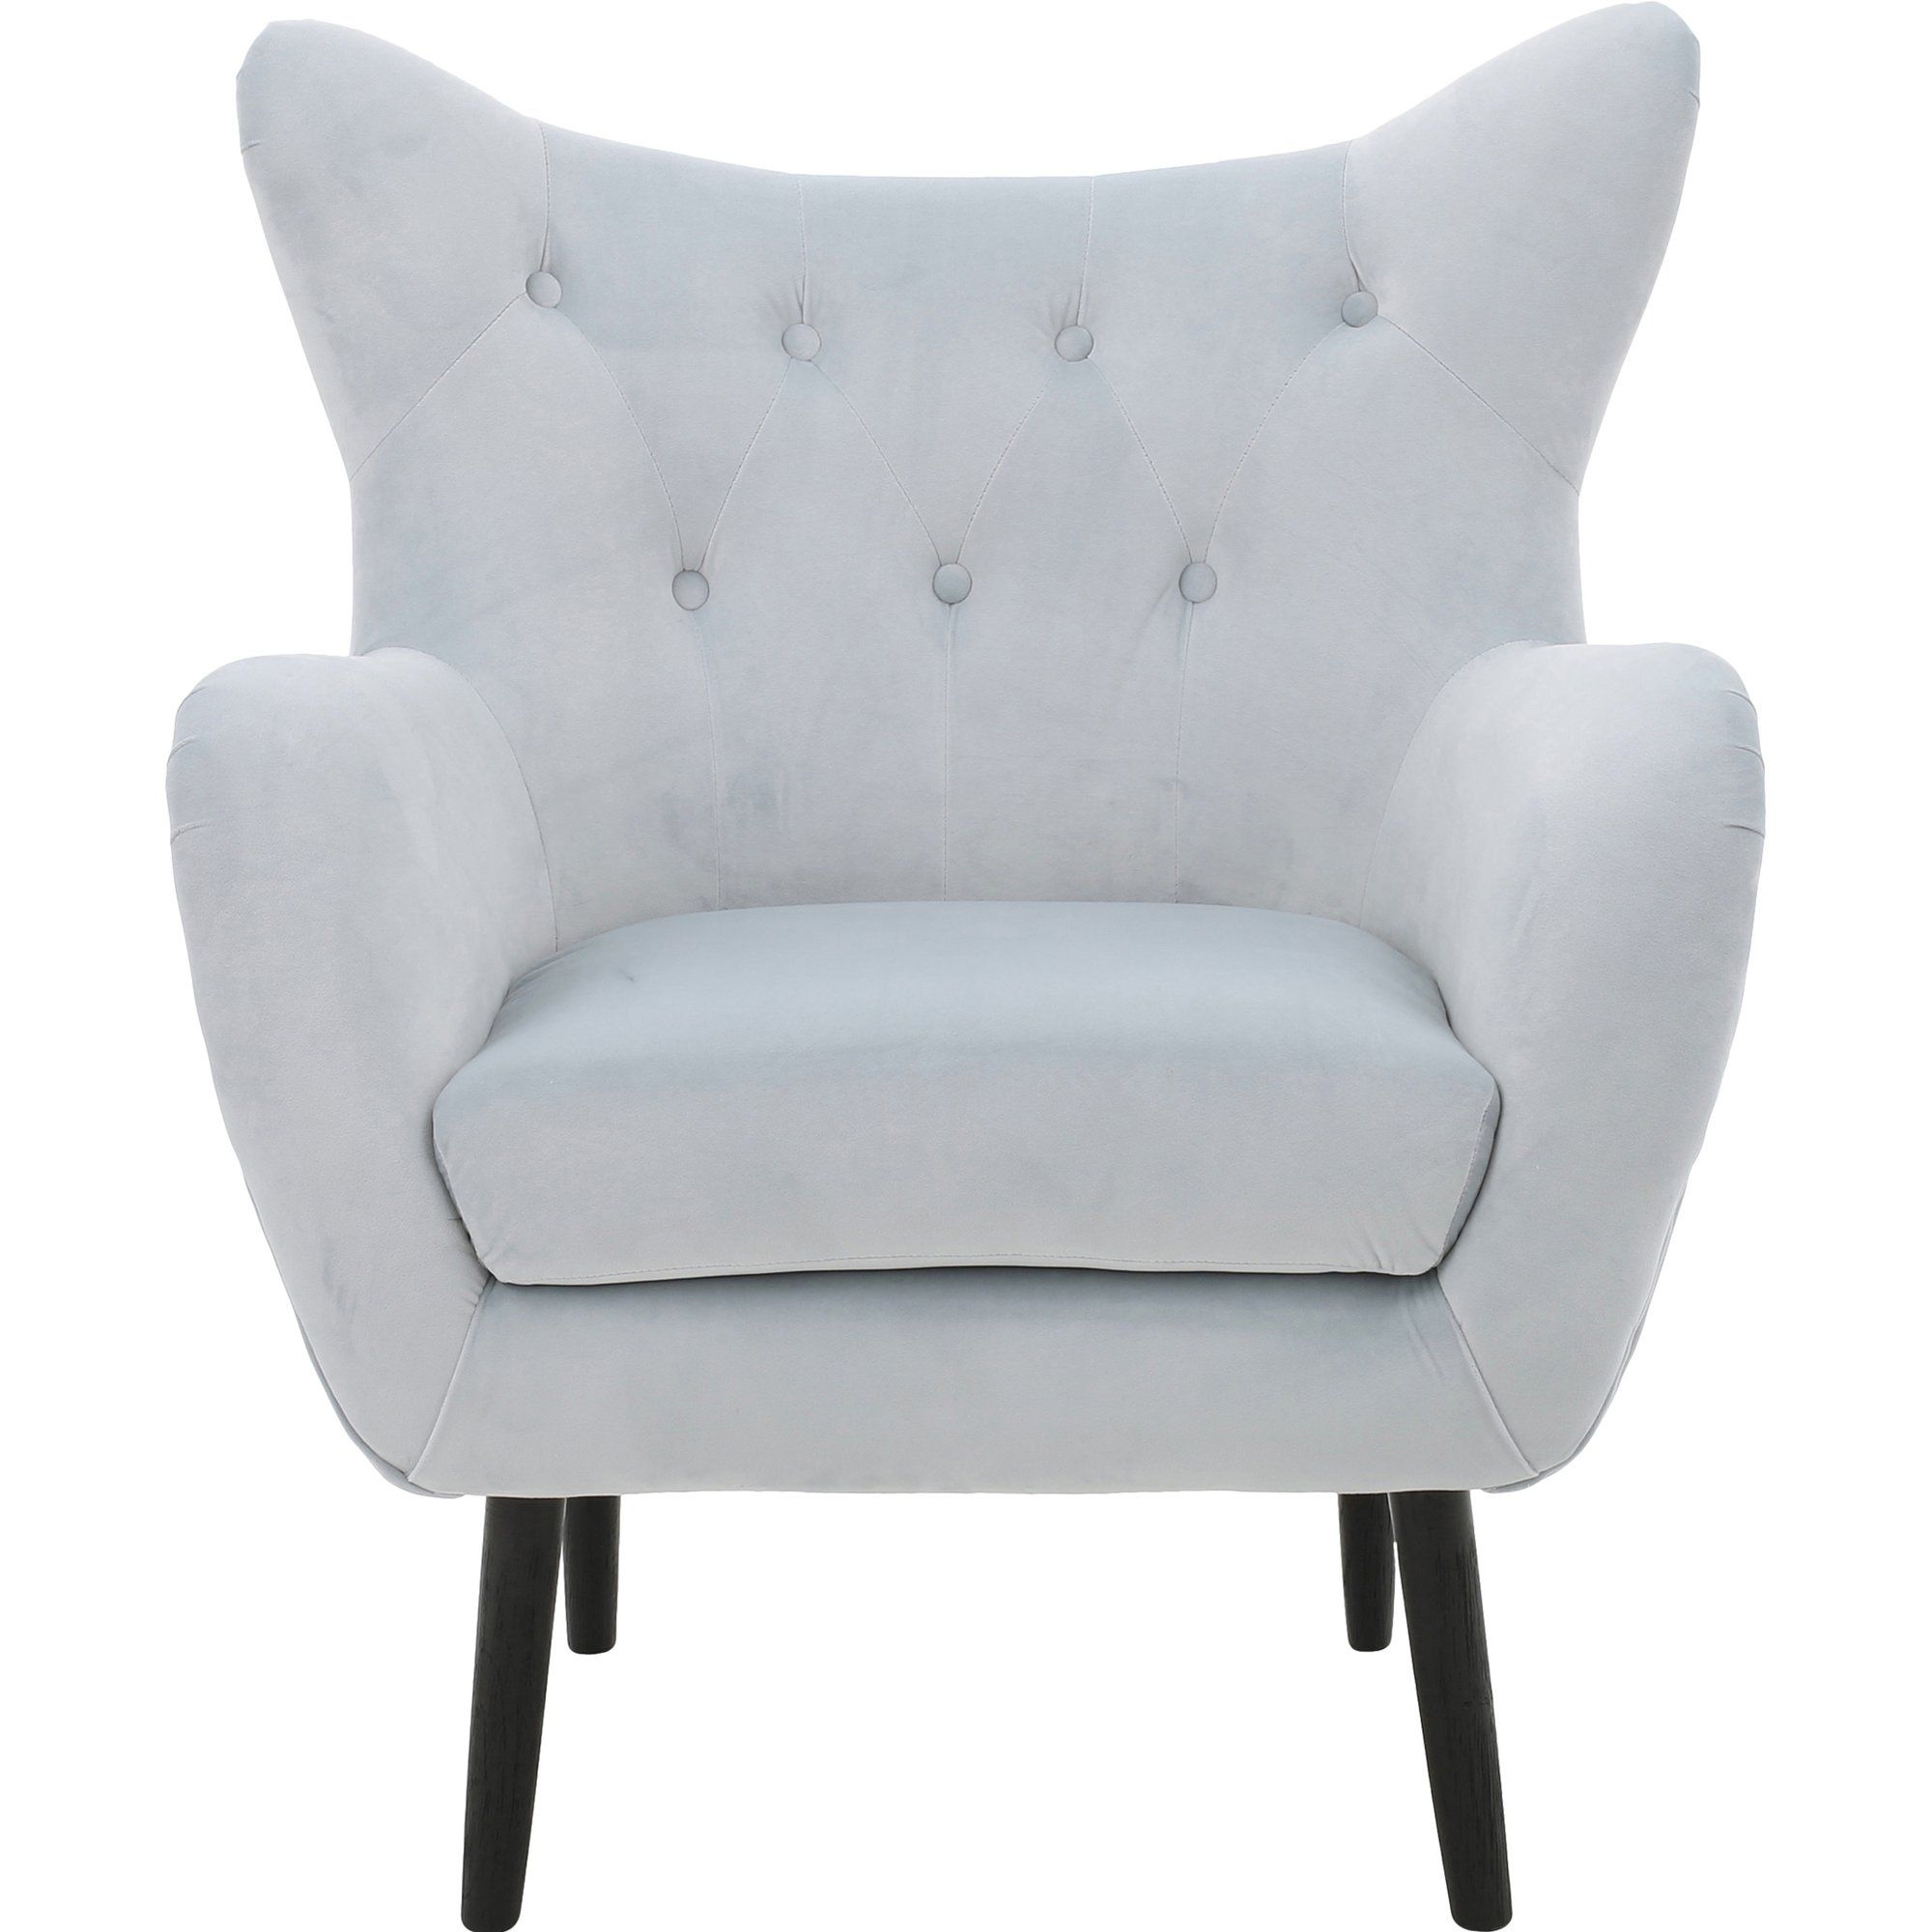 Main Image Zoomed | Wingback Chair, Accent Chairs, Mid In Bouck Wingback Chairs (View 11 of 15)